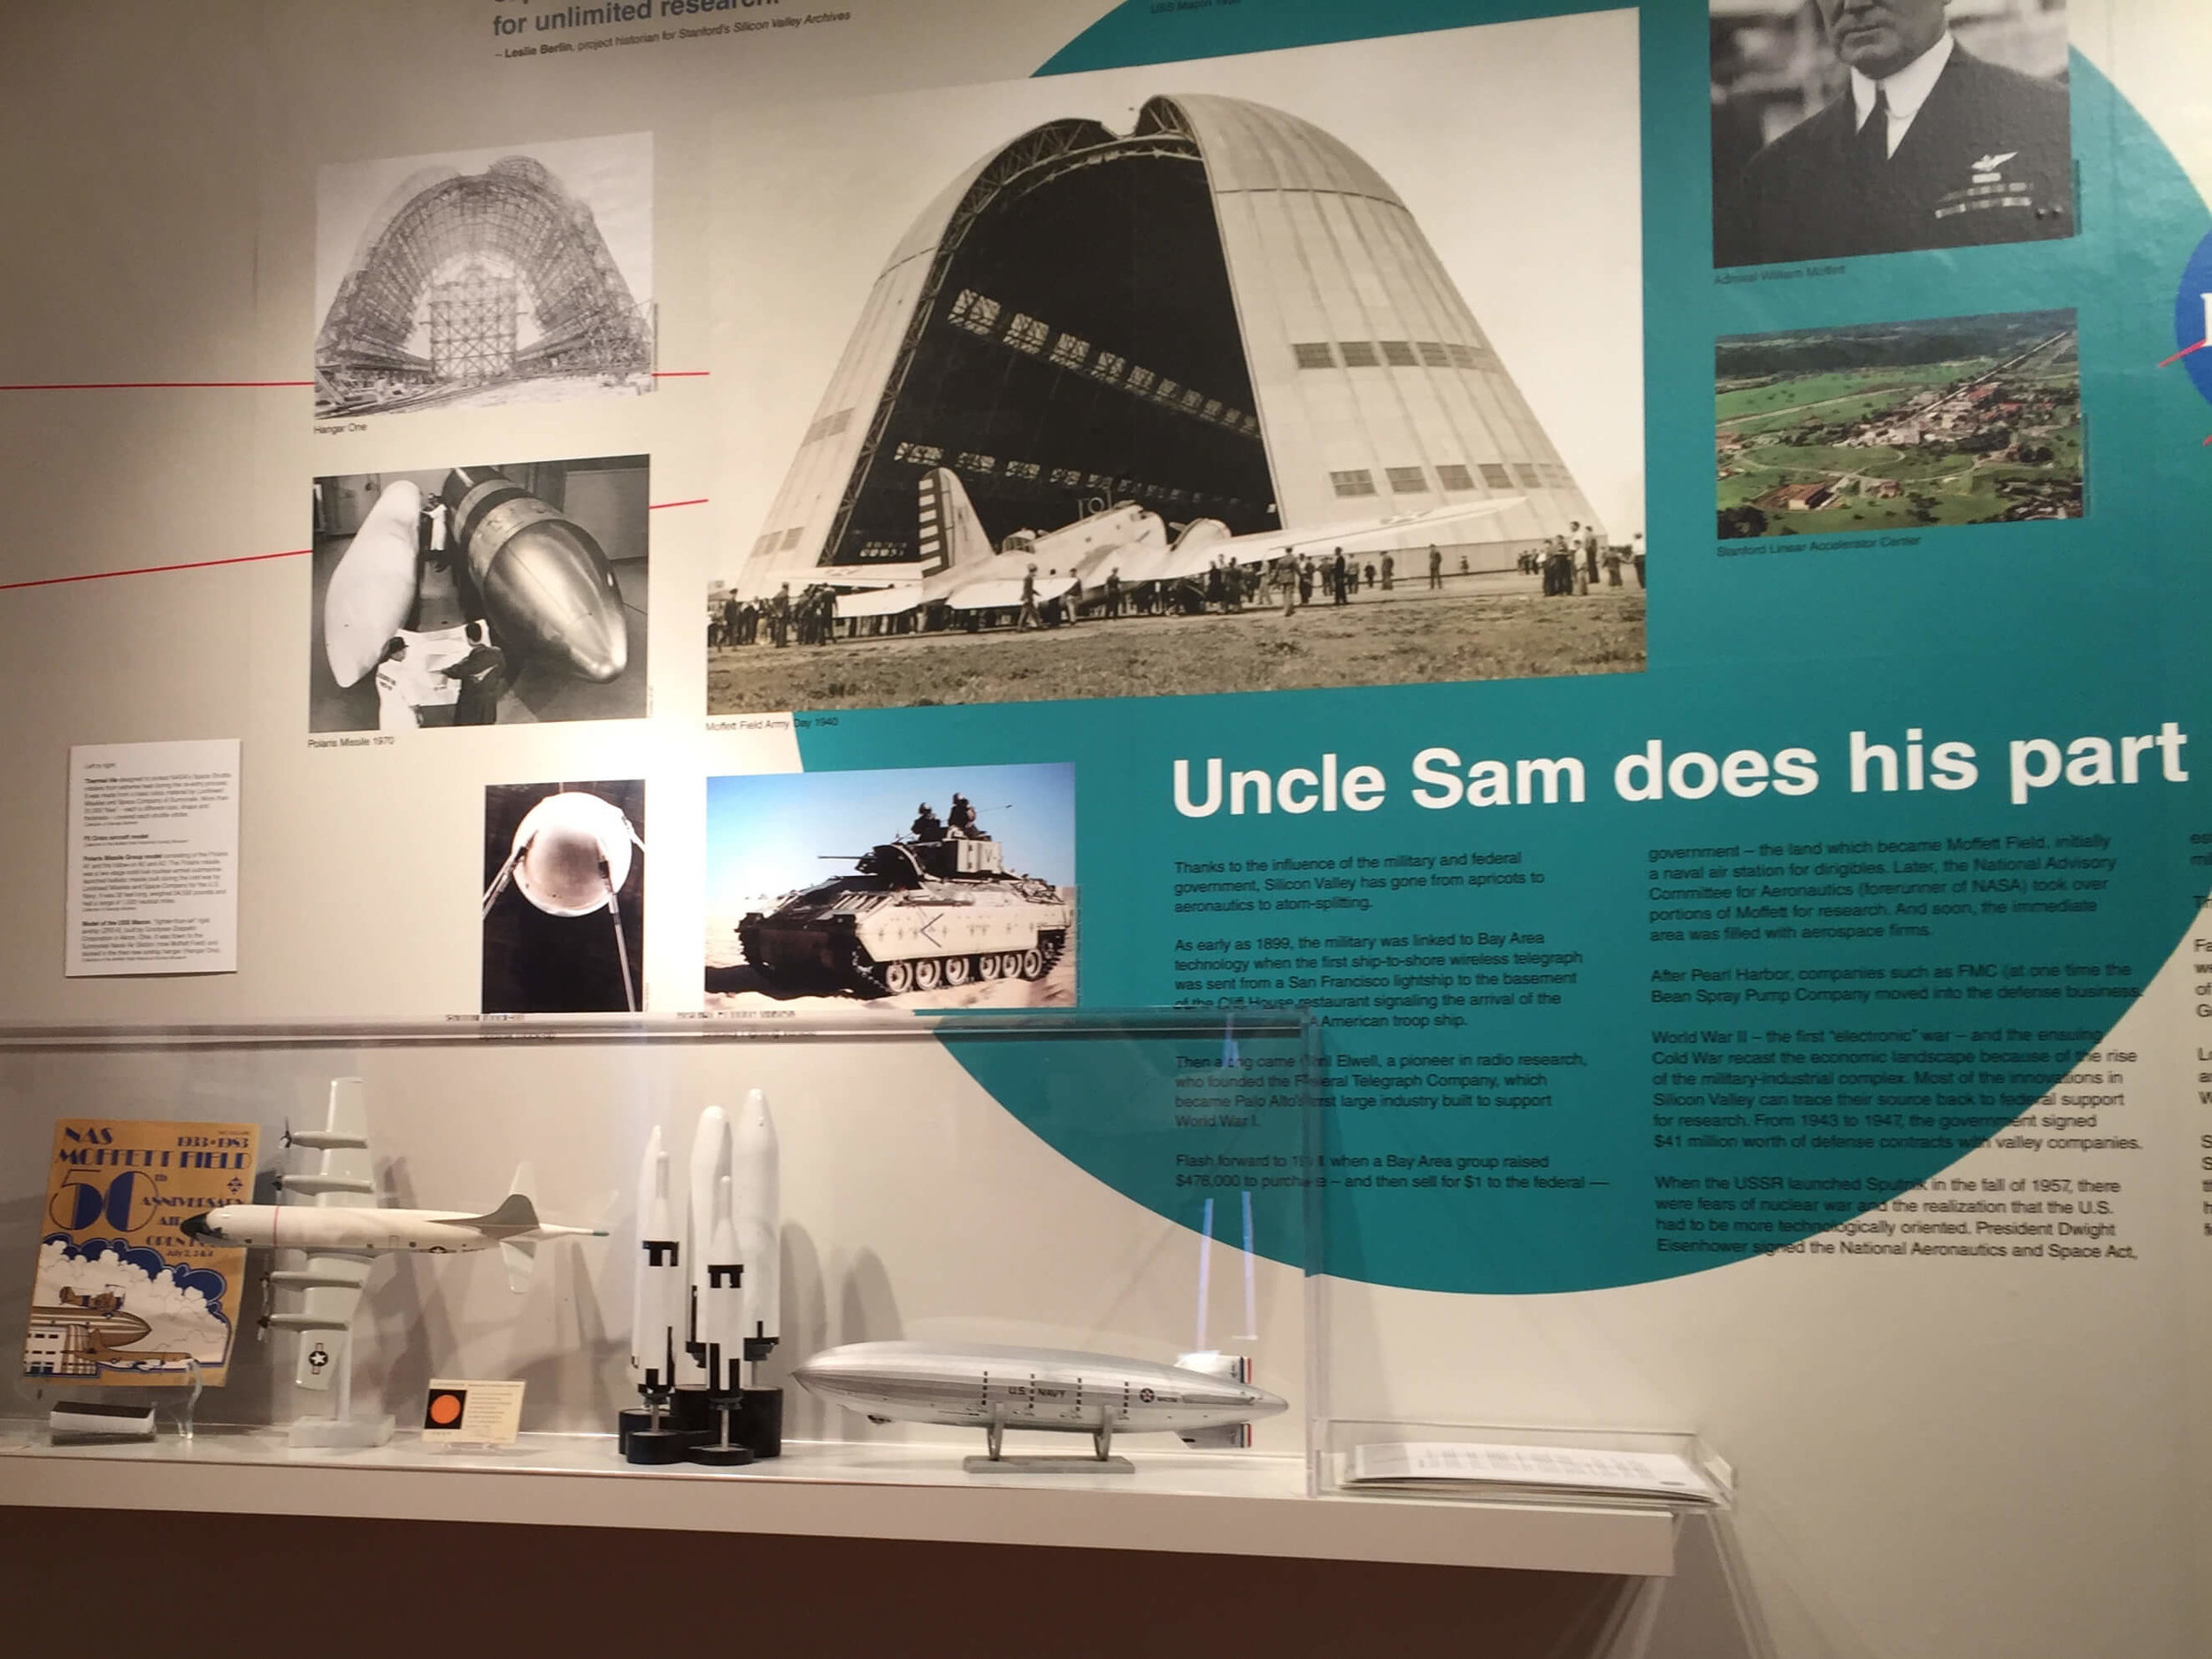 10-Silicon-Valley-Los Altos-History-Museum-The Sibbett Group-Uncle Sam.jpg